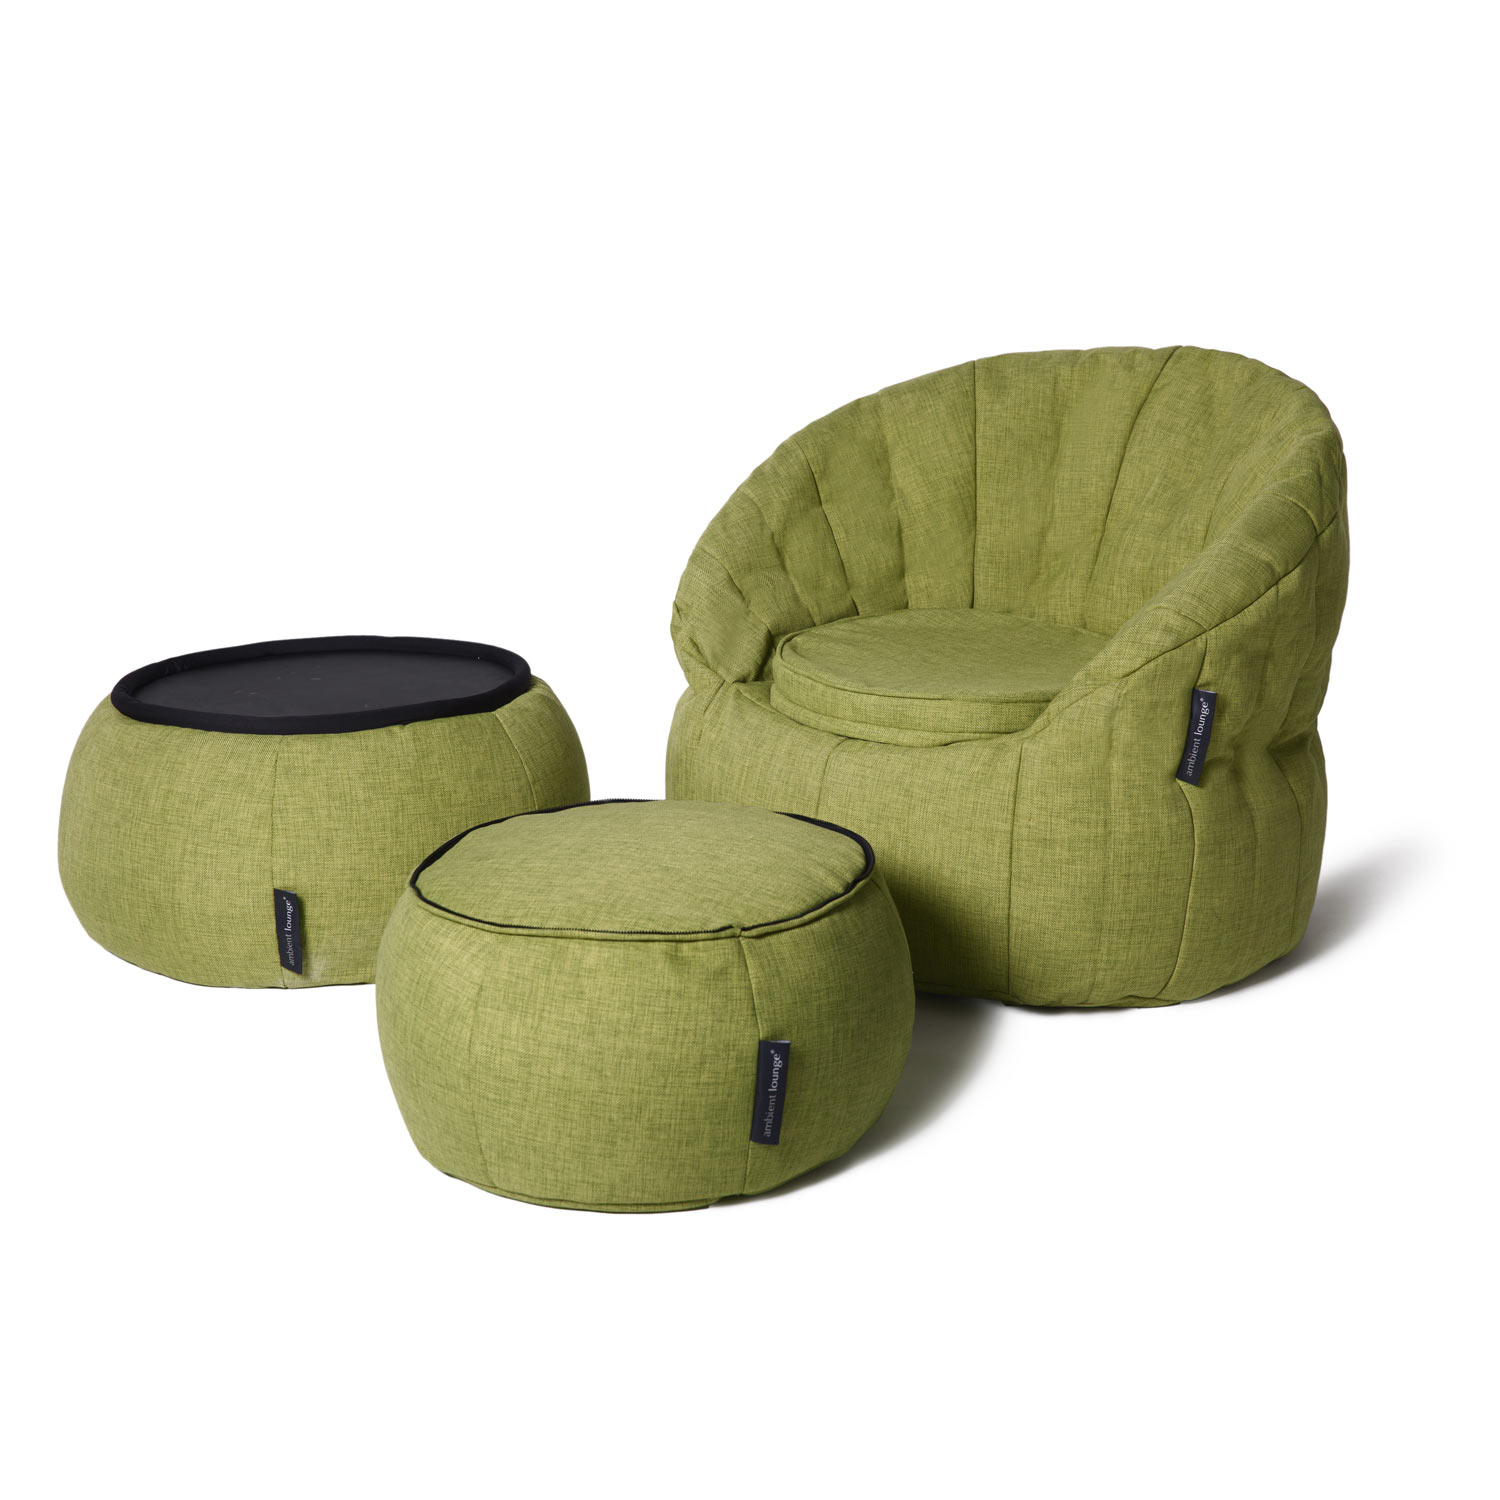 Indoor Green Bean Bag Table Versa Table Lime Citrus